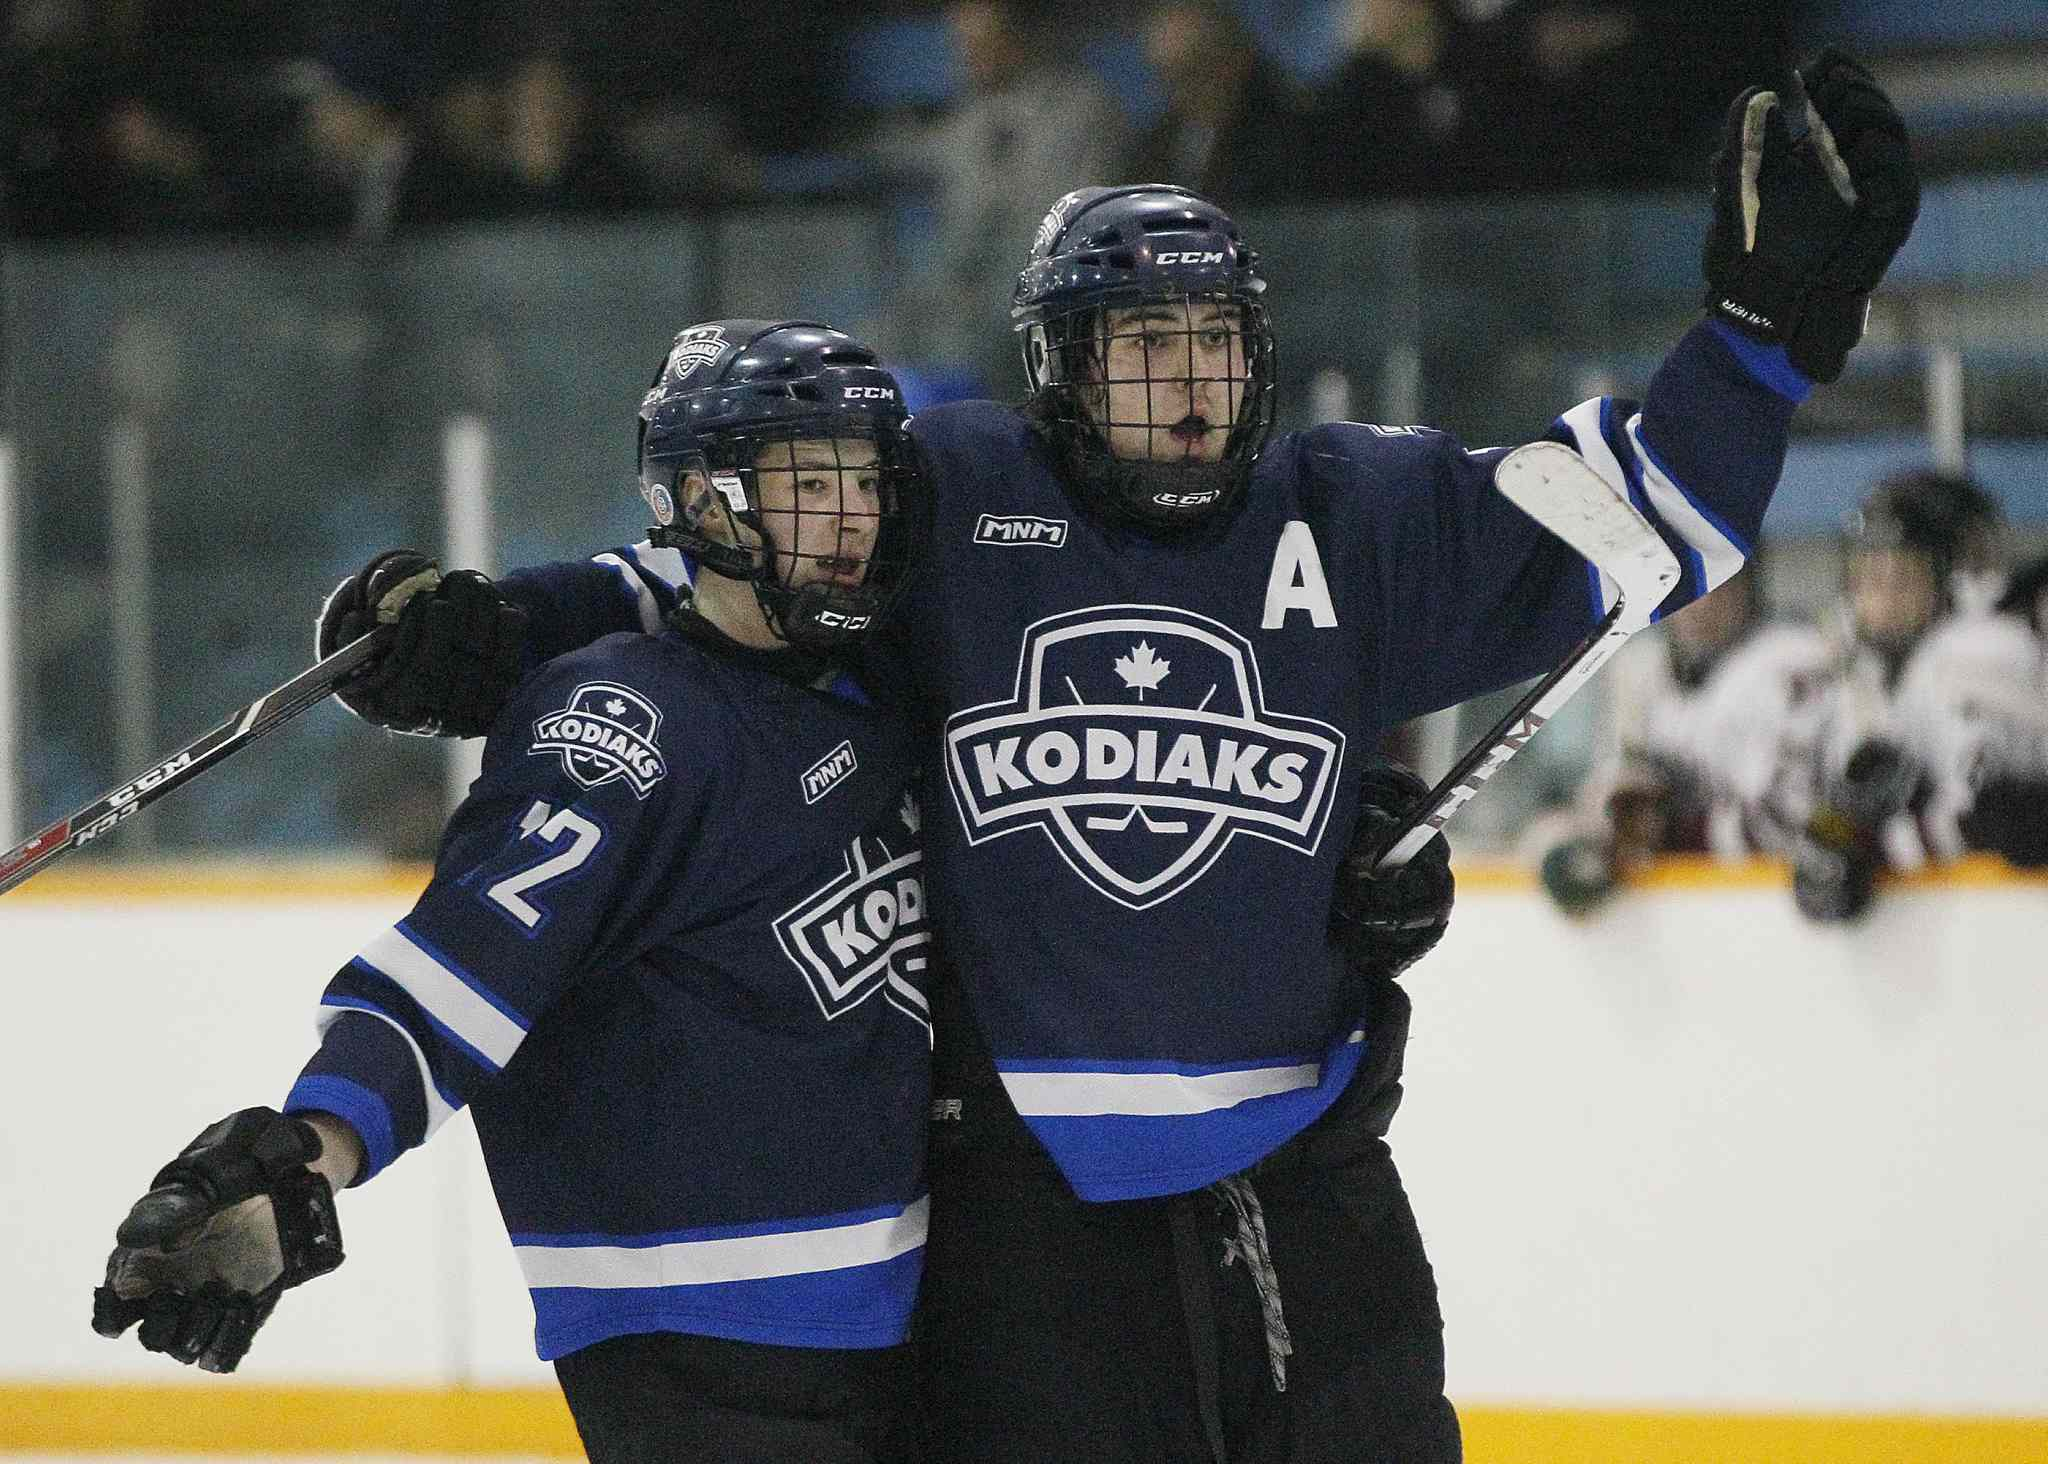 The River East Kodiaks Holden Band (left) and Tristan Beach celebrate Beach's goal against the St. Paul's Crusaders.